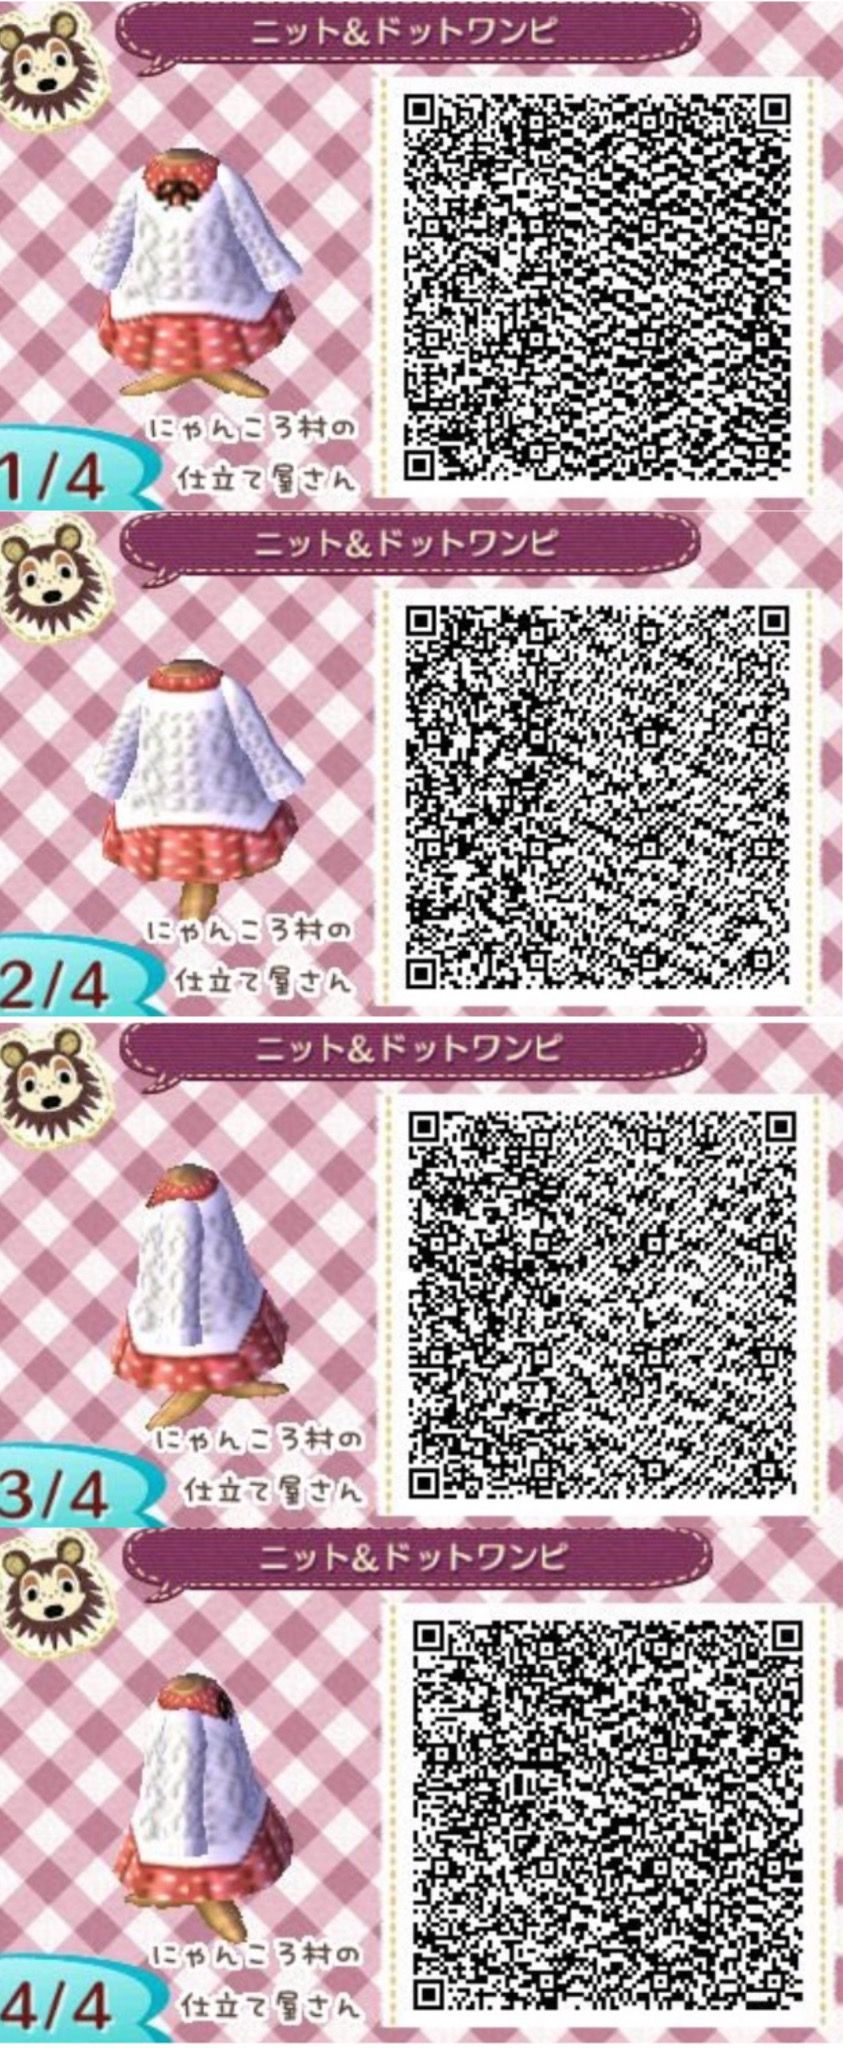 Codes Qr Leaf Dress Crossing New Winter Animal